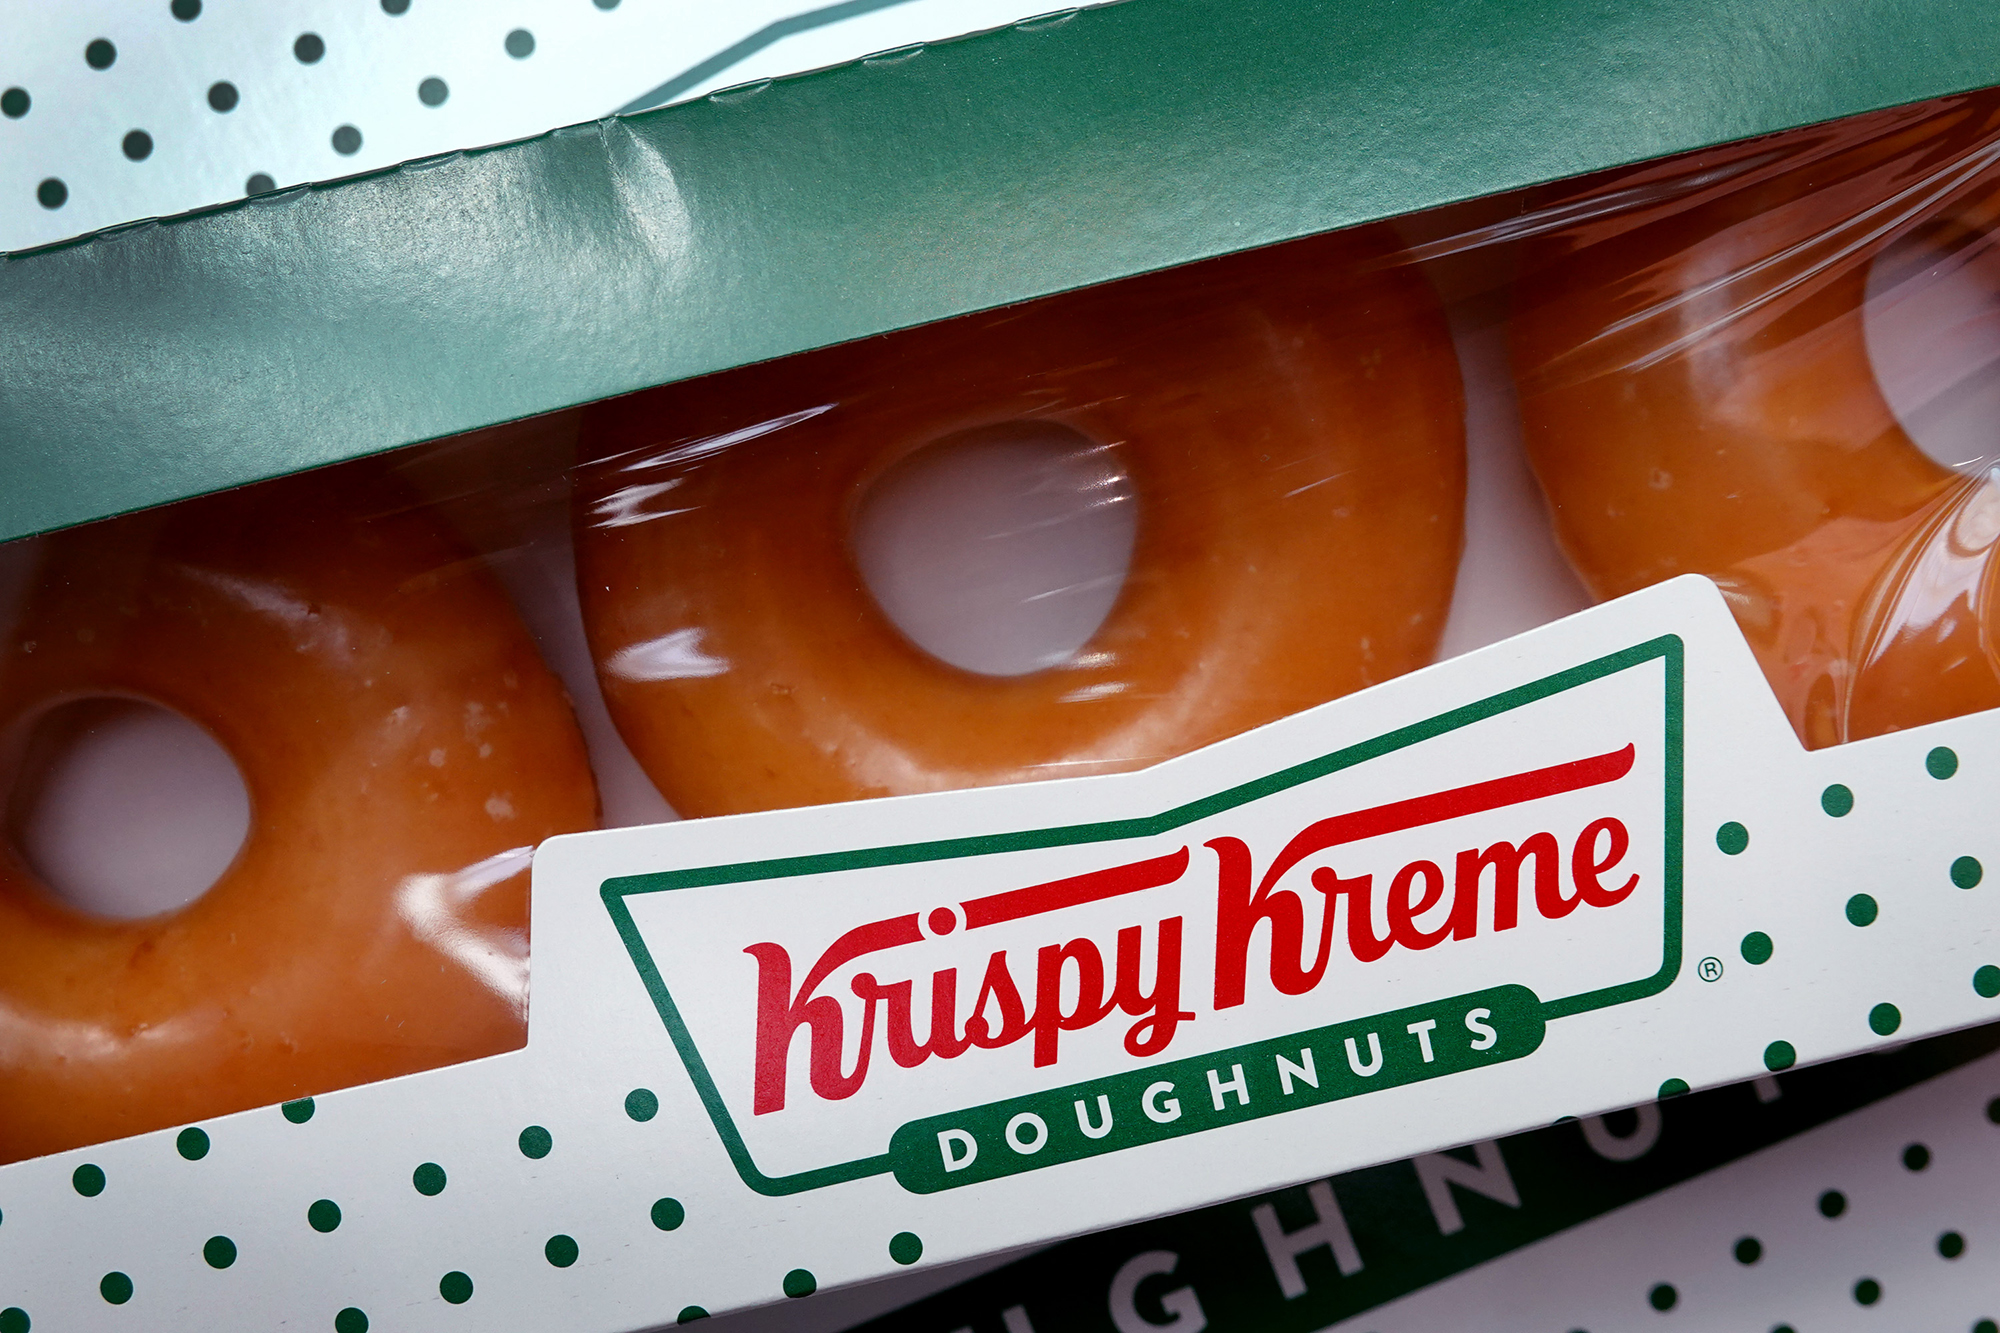 Krispy Kreme has given more than 1.5 million doughnuts away to vaccinated customers.